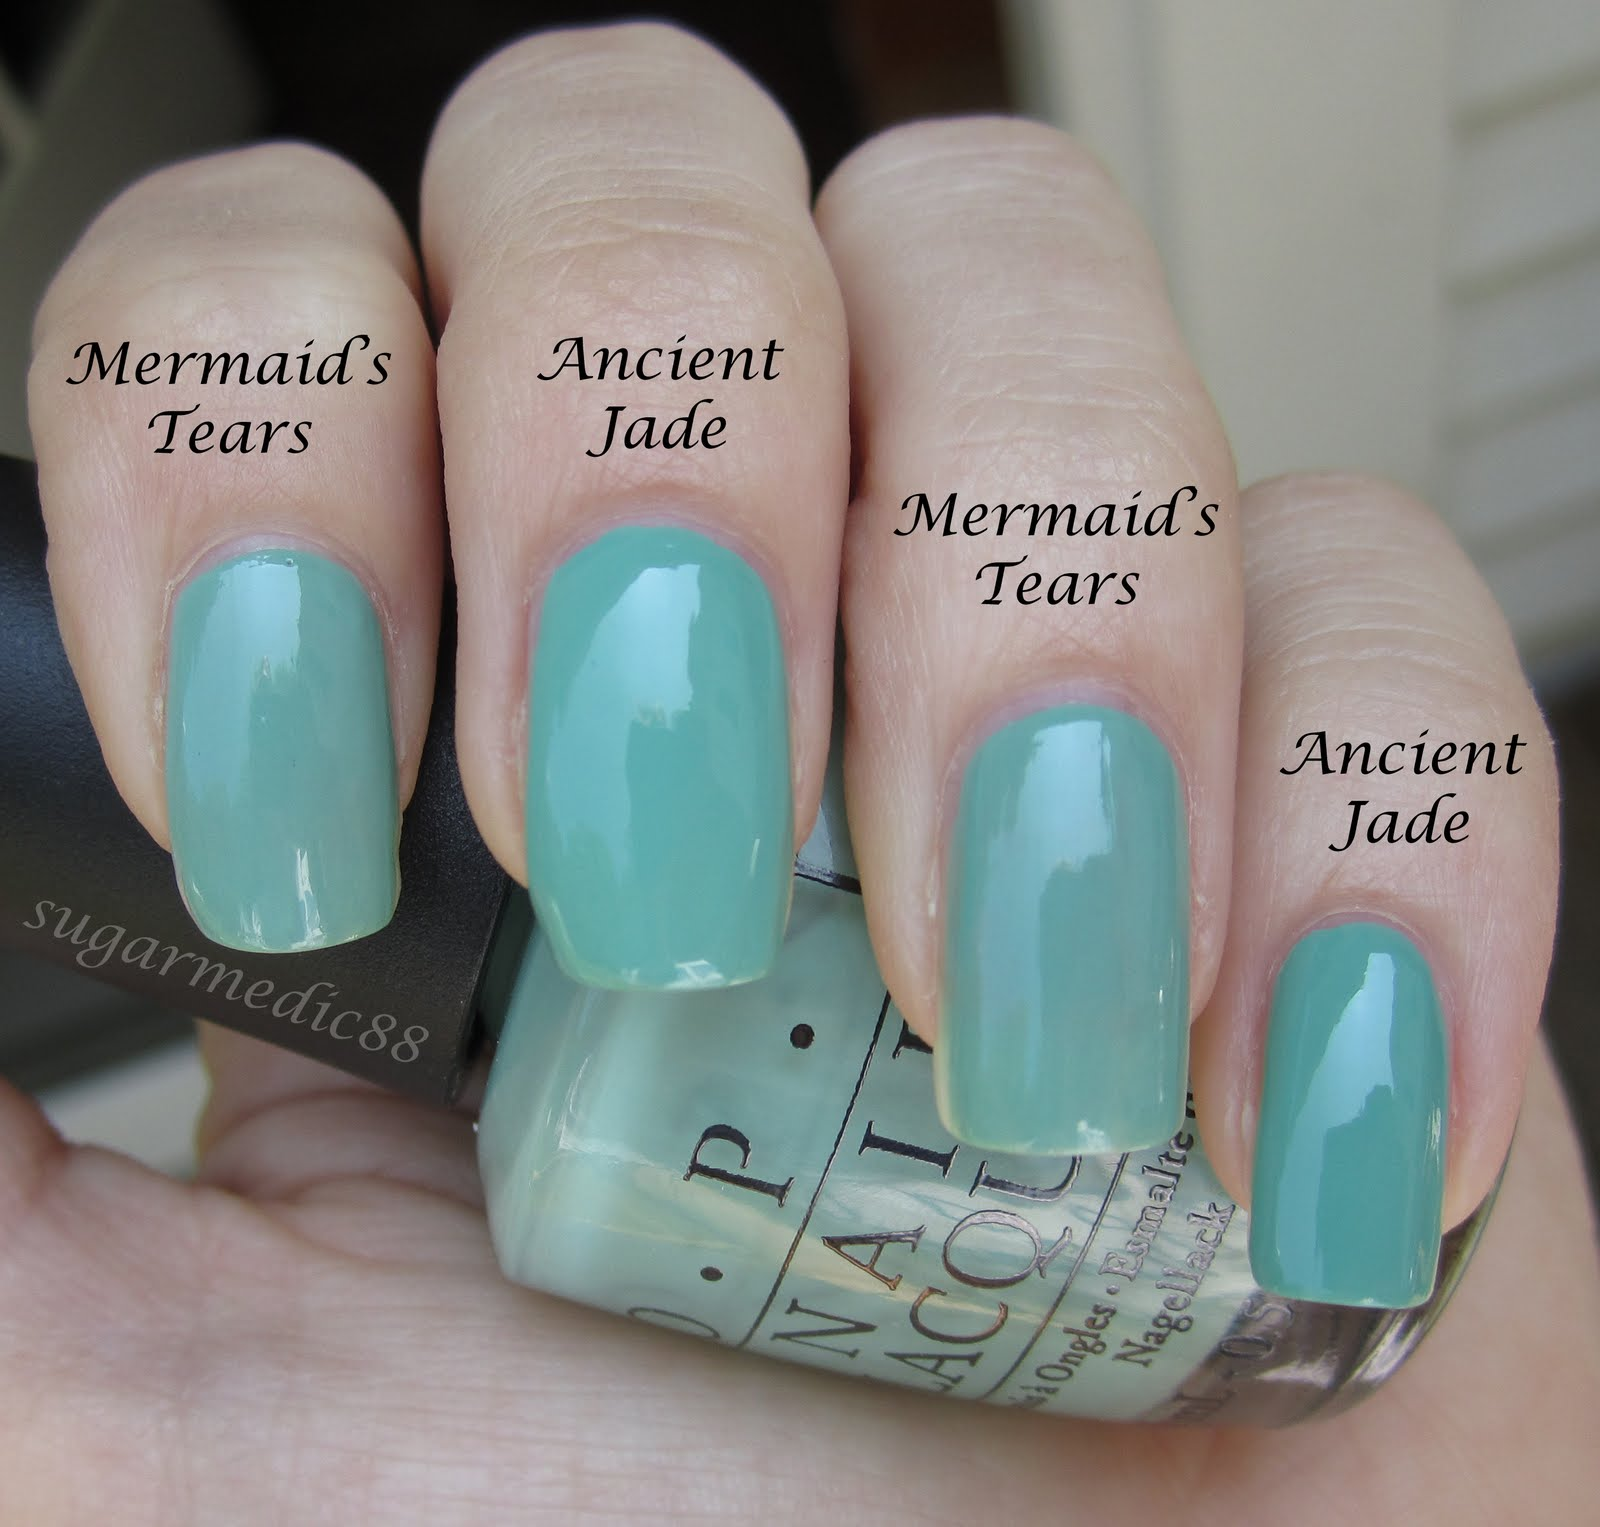 The Polished Medic: Orly Ancient Jade Vs. OPI Mermaid\'s Tears Comparison